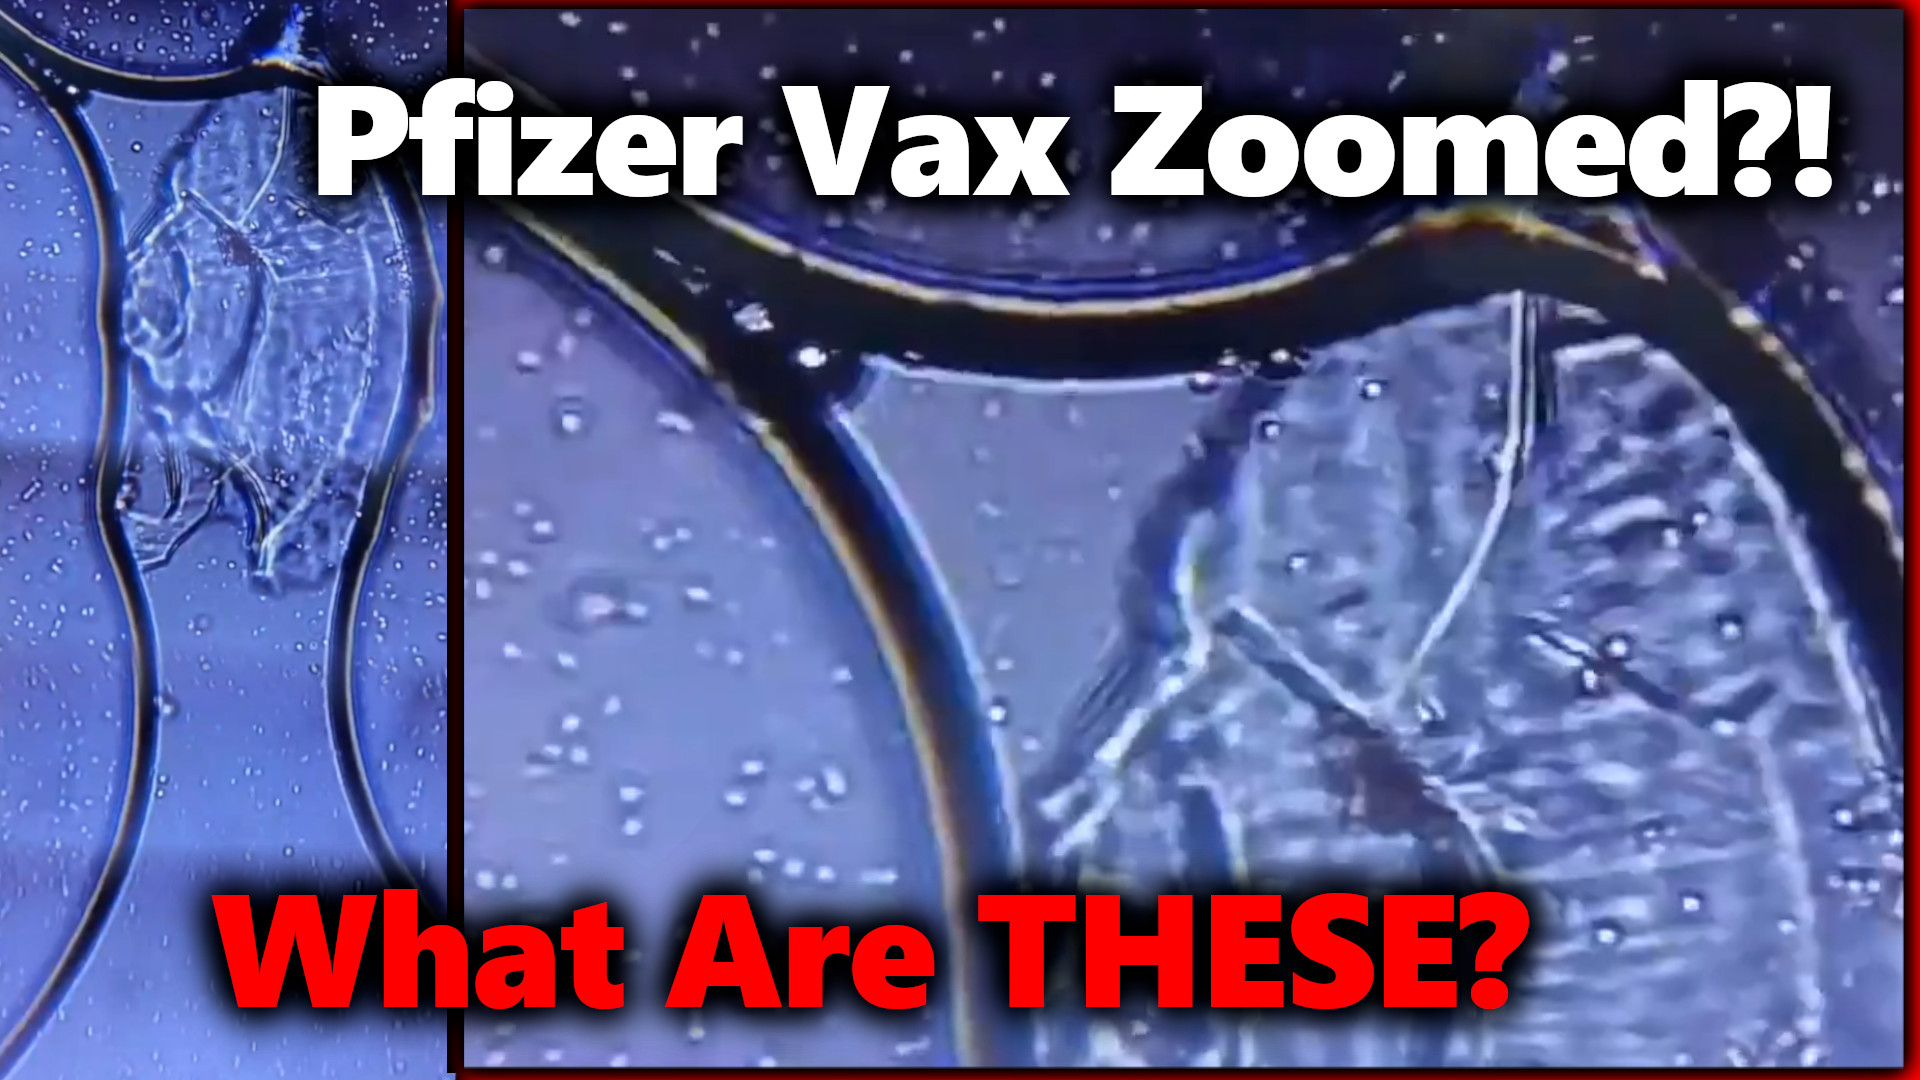 DISTURBING! Pfizer Vaccine Zoomed w/ Microscope?! Are Living Cells/ Organisms  Mixed In?!